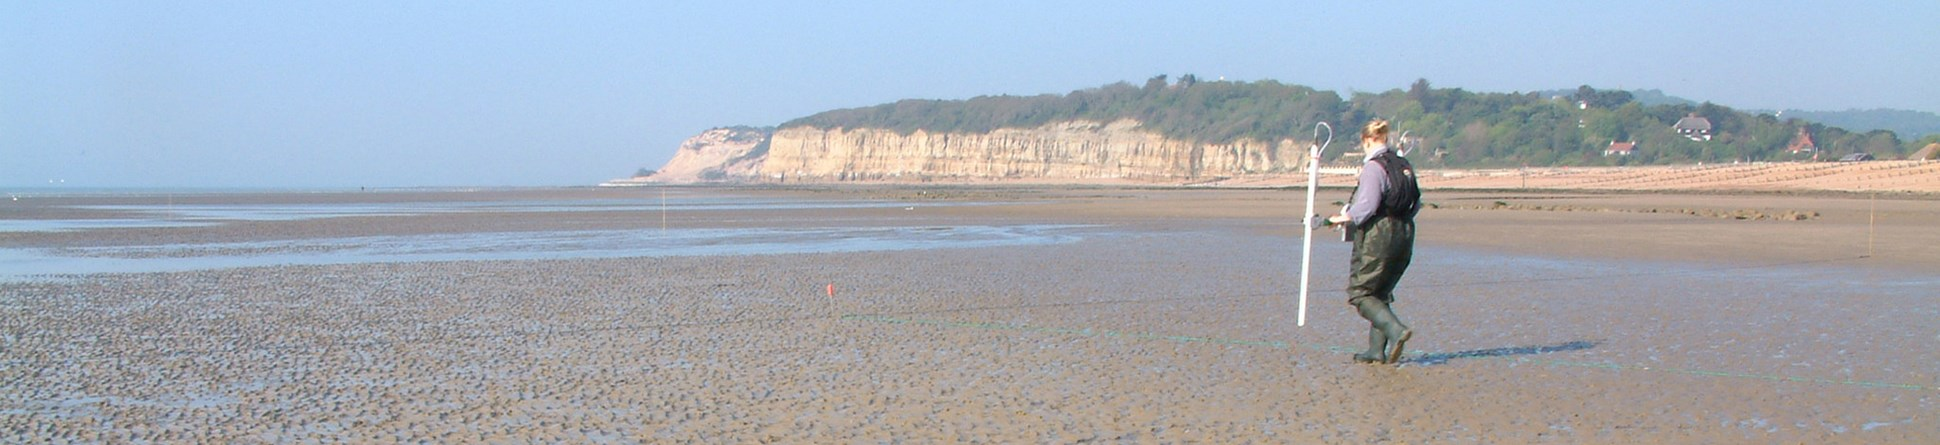 Colour photograph showing a woman in waders walking with a metal frame across a beach with low cliffs in the background